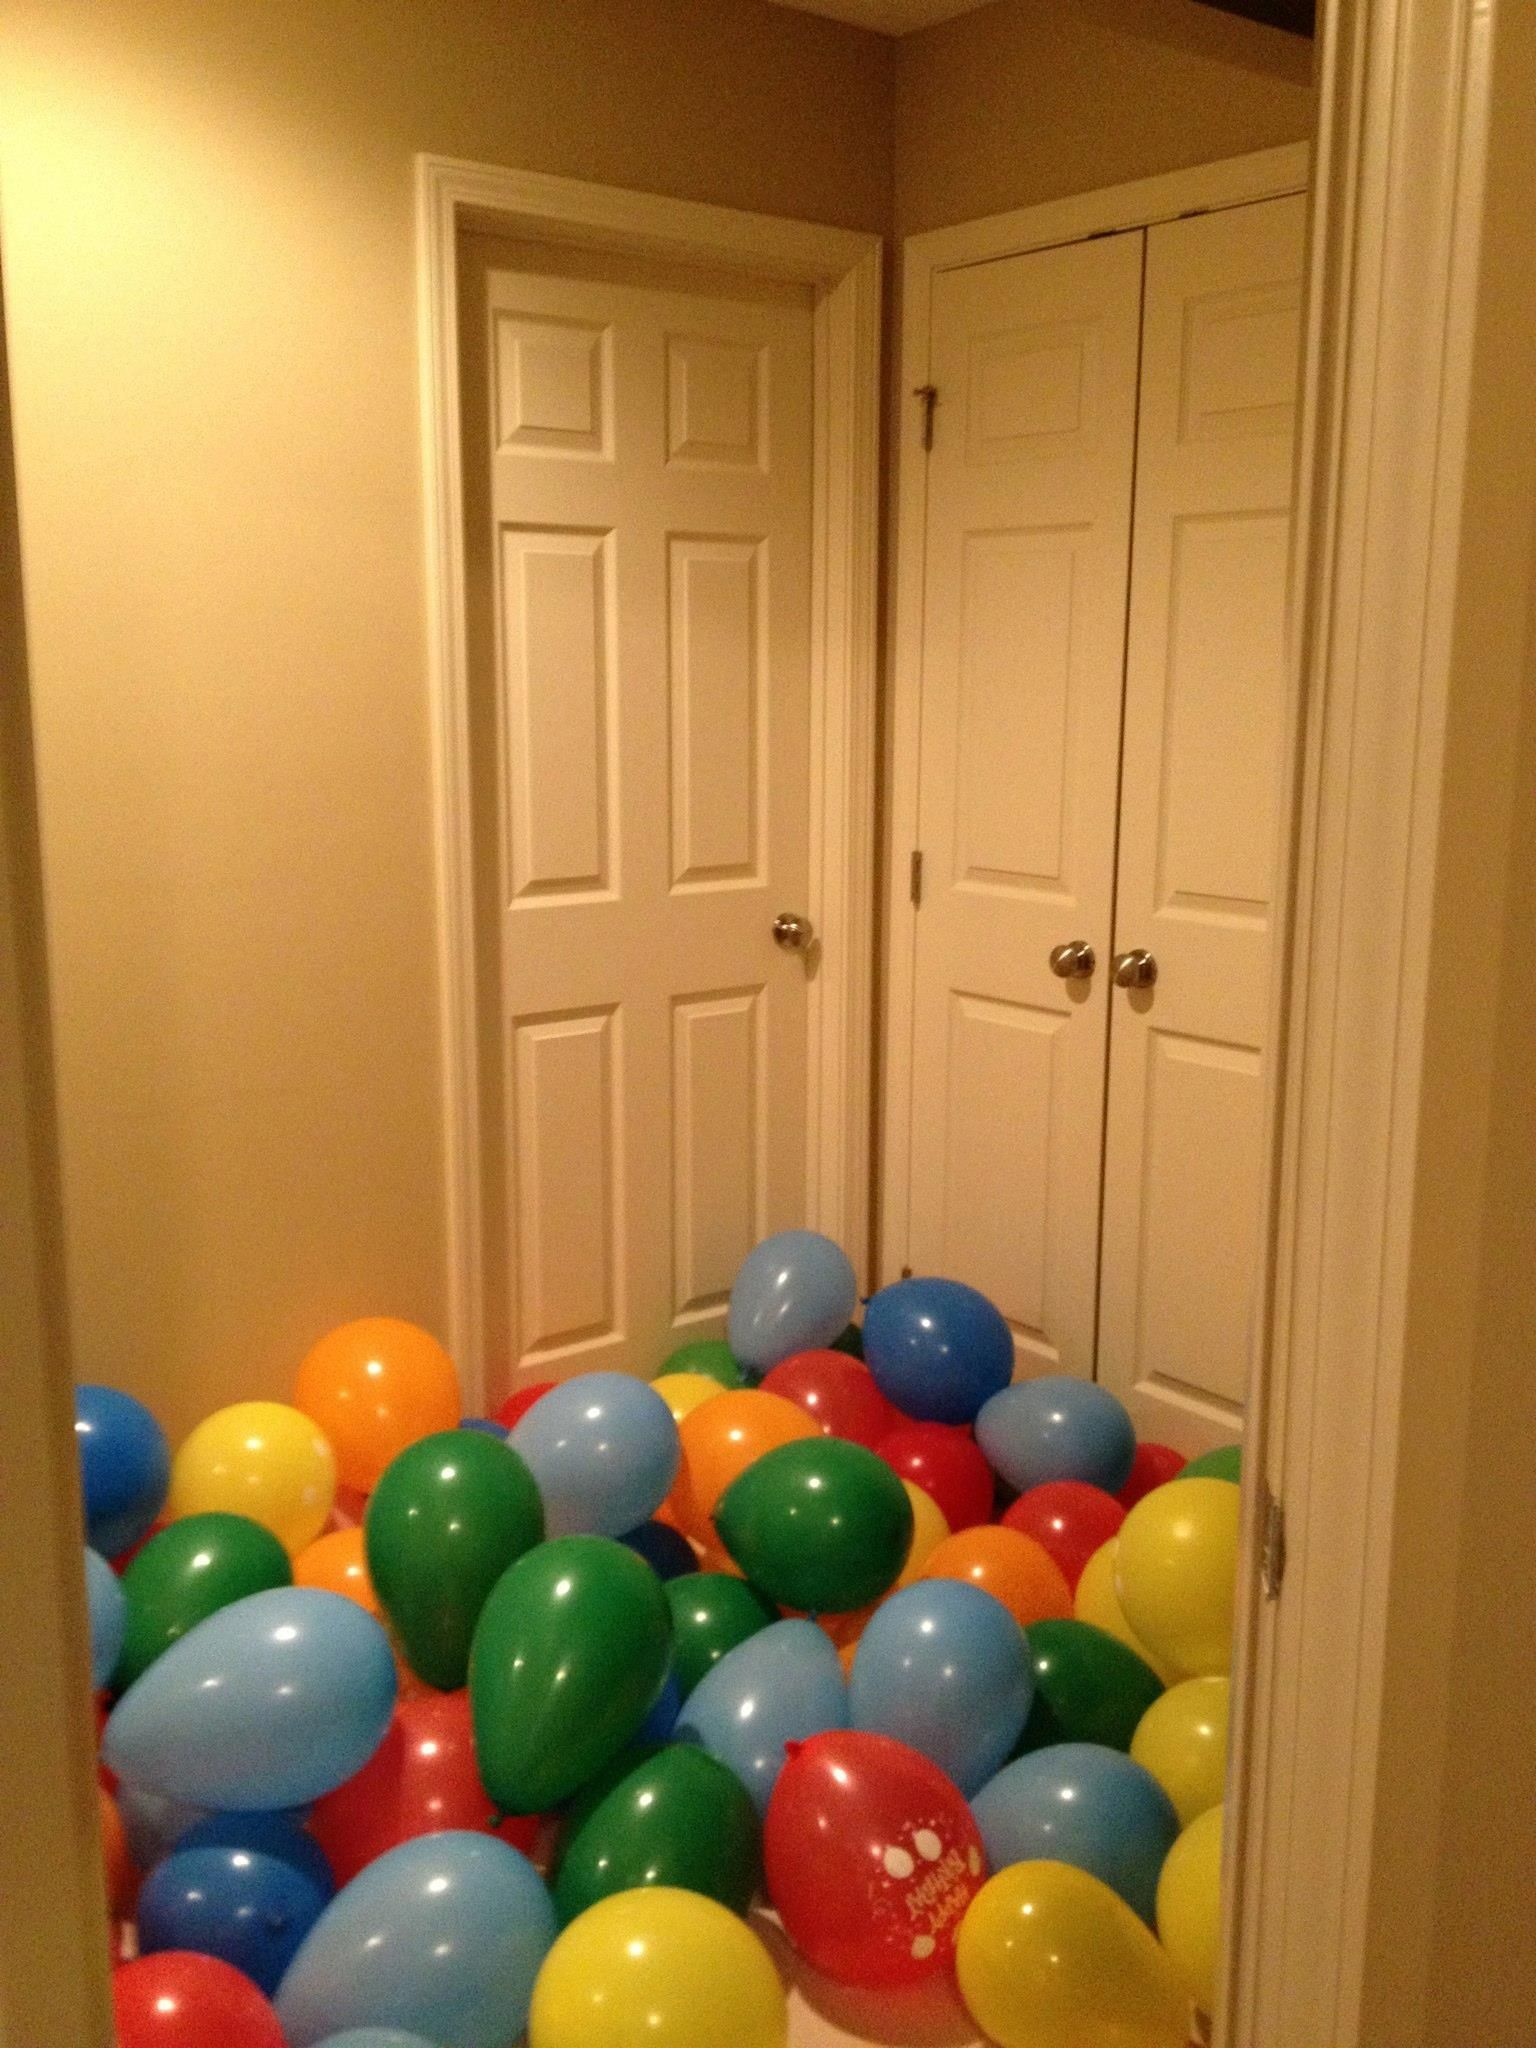 Balloons outside a childs bedroom for a birthday morning surprise